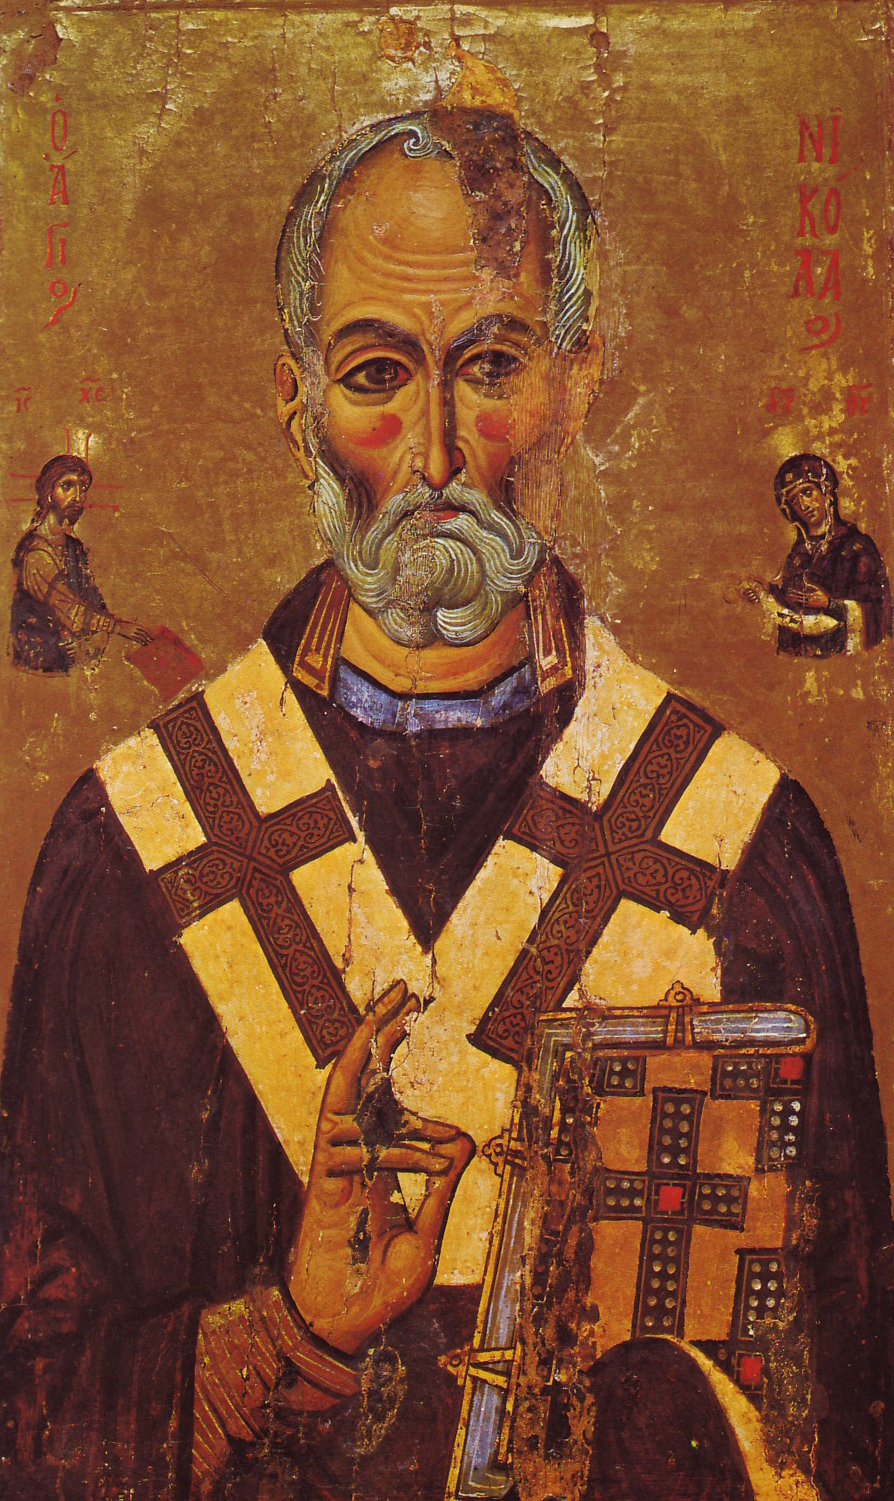 http://upload.wikimedia.org/wikipedia/commons/e/eb/St_Nicholas_Icon_Sinai_13th_century.jpg?uselang=ru